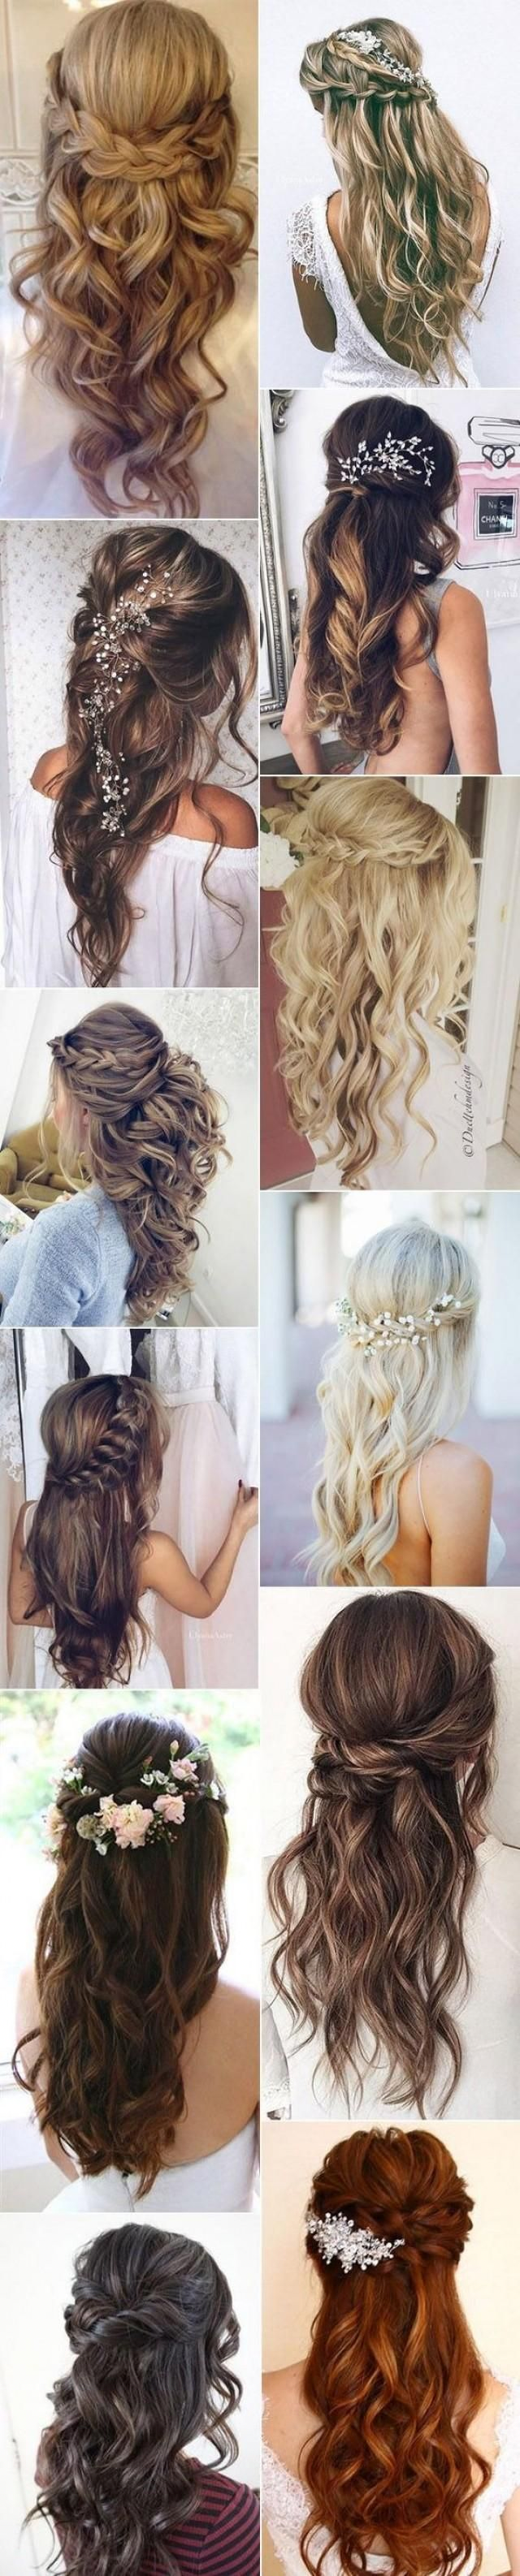 best hairstyles images on pinterest hair makeup braided buns